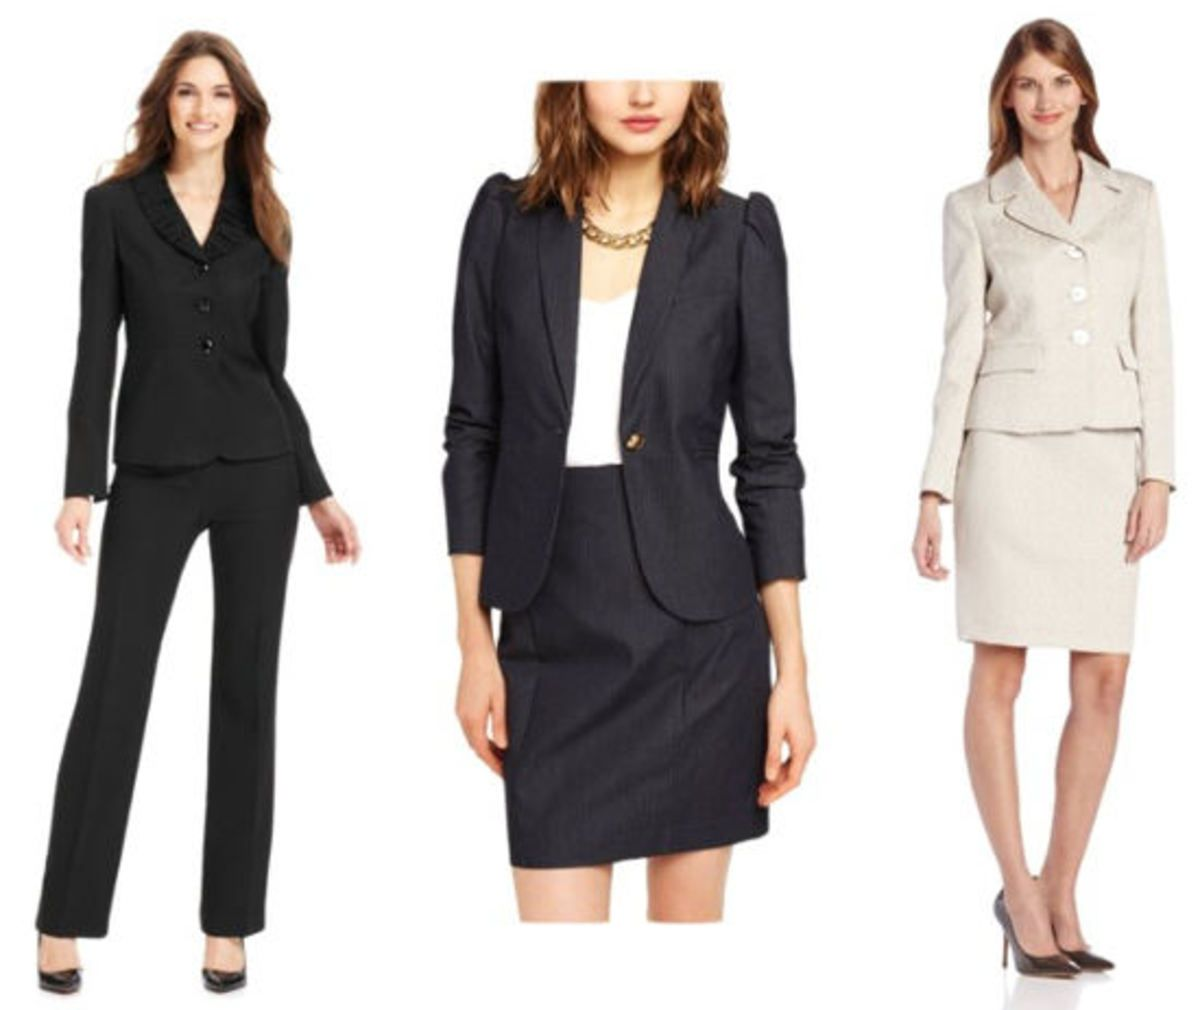 dress codes 101 business formal  college fashion